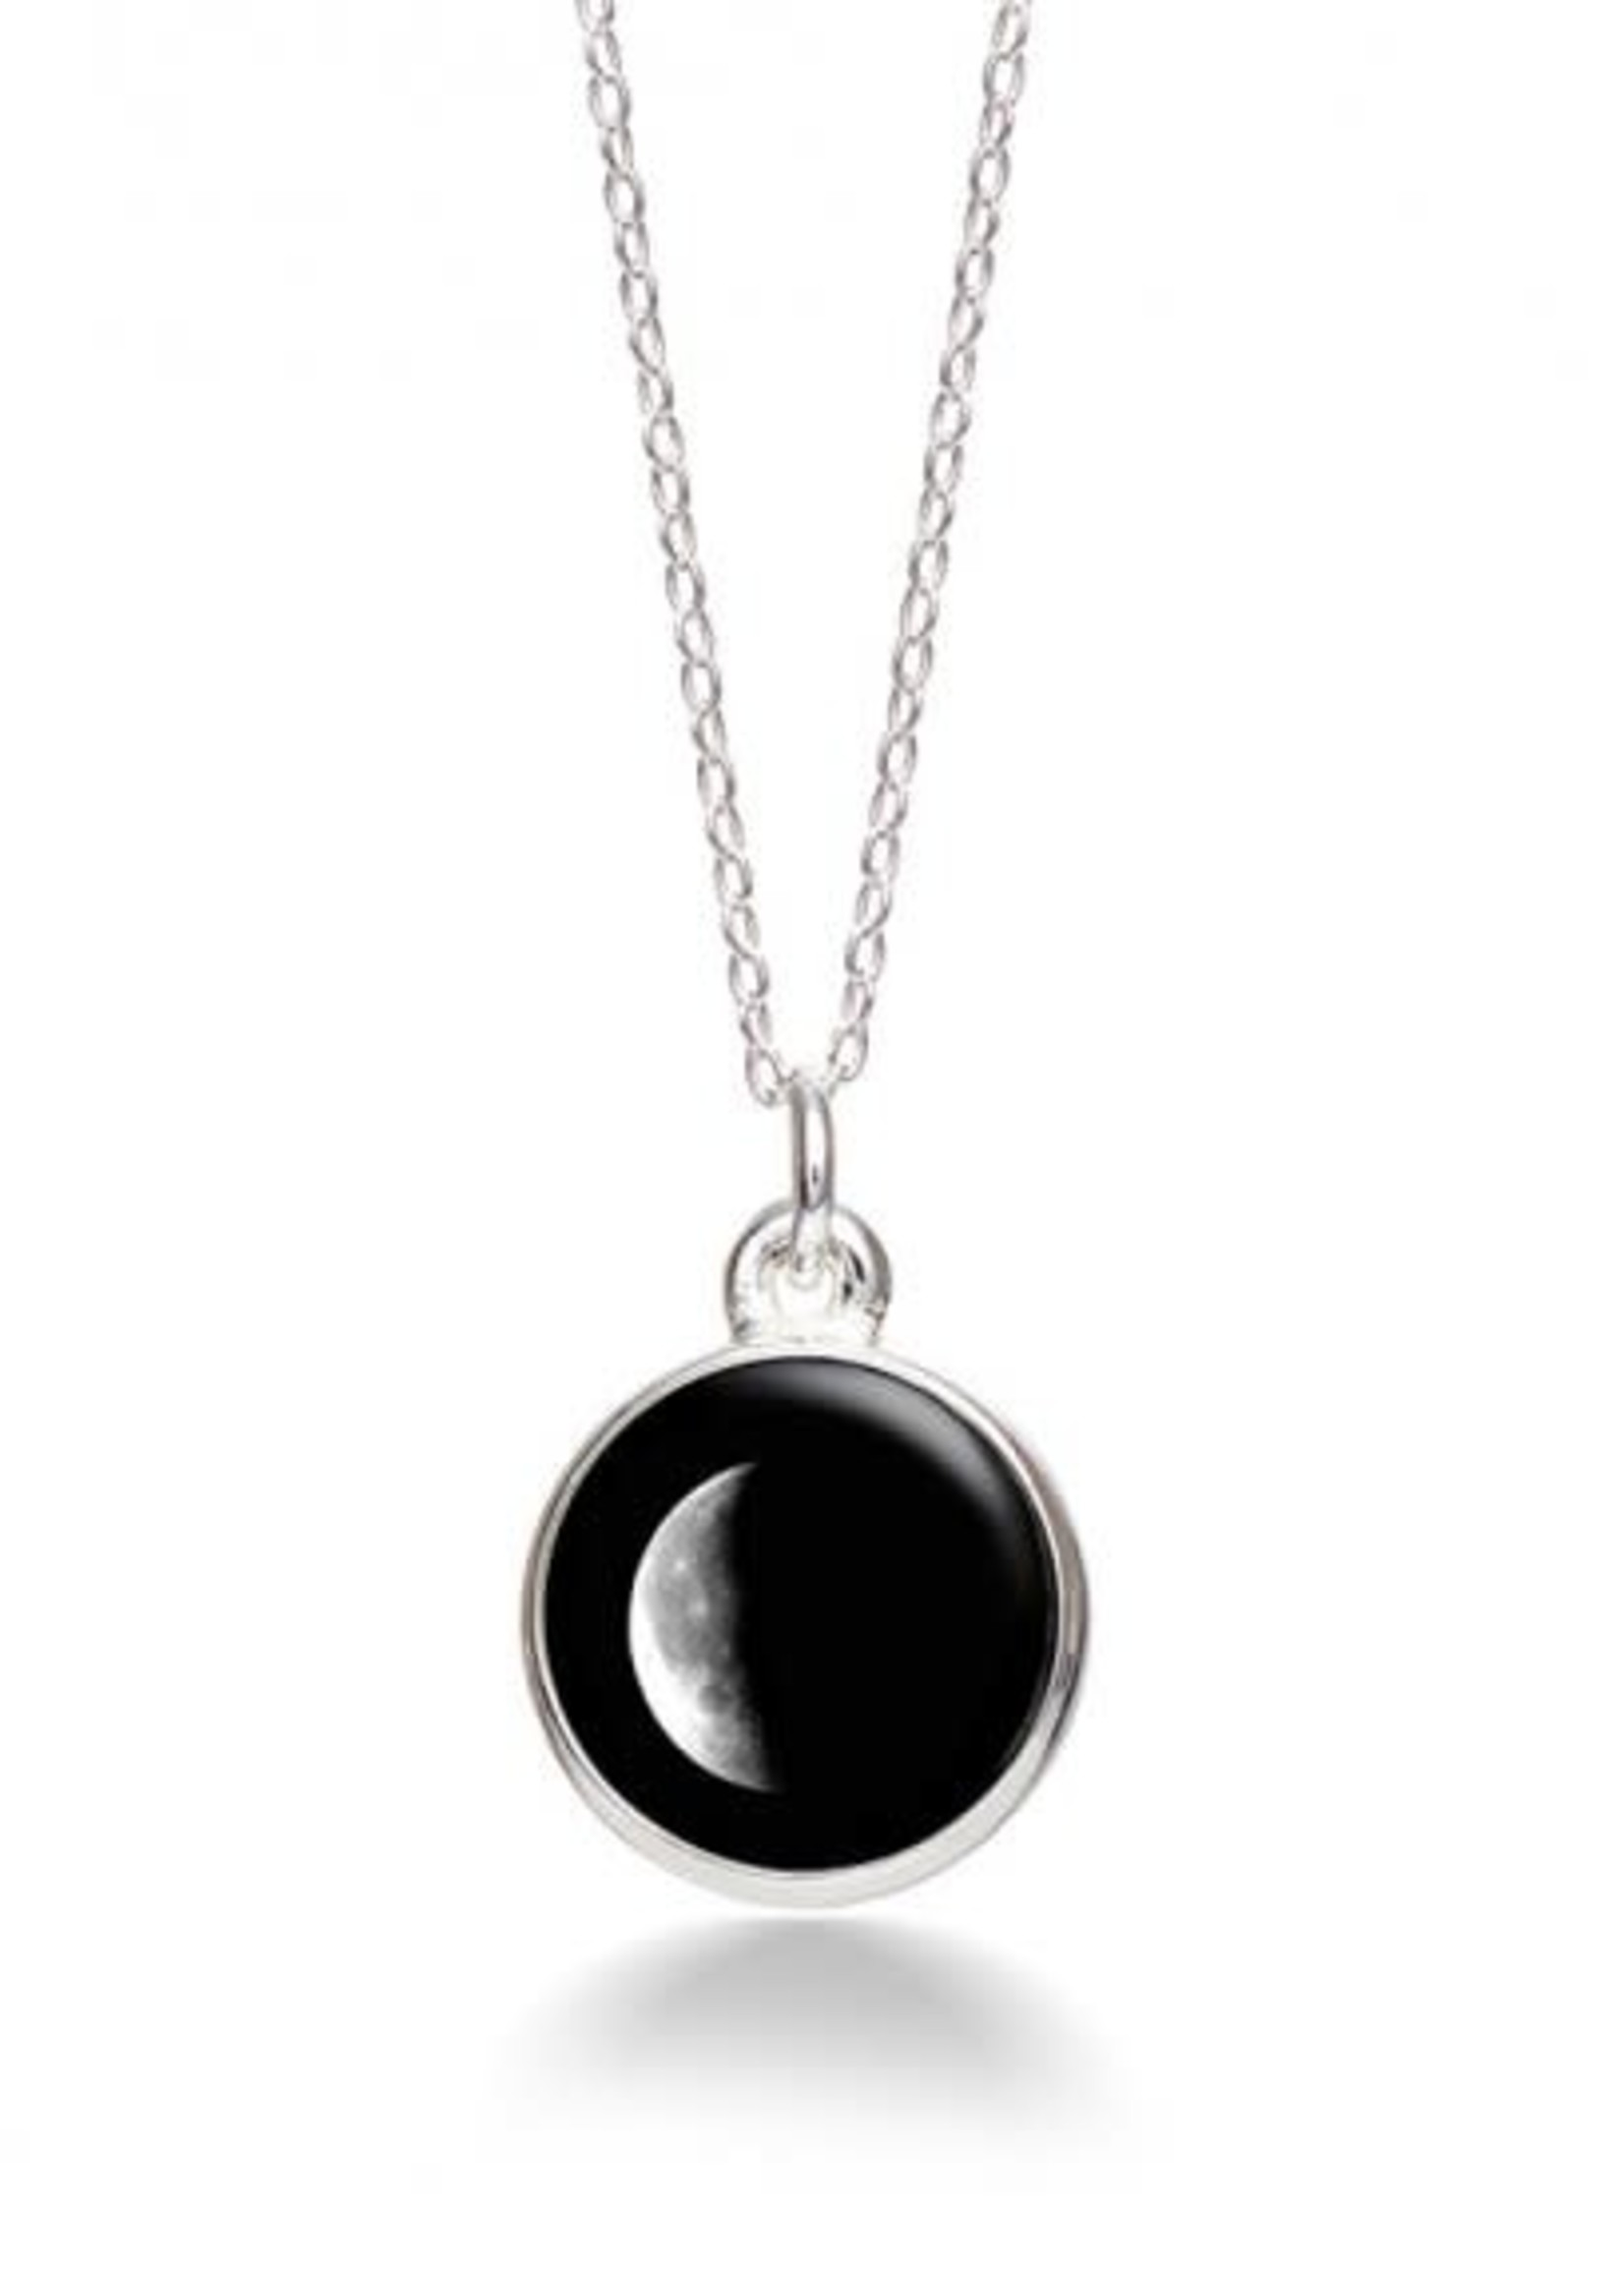 Moonglow Sterling Silver Necklaces